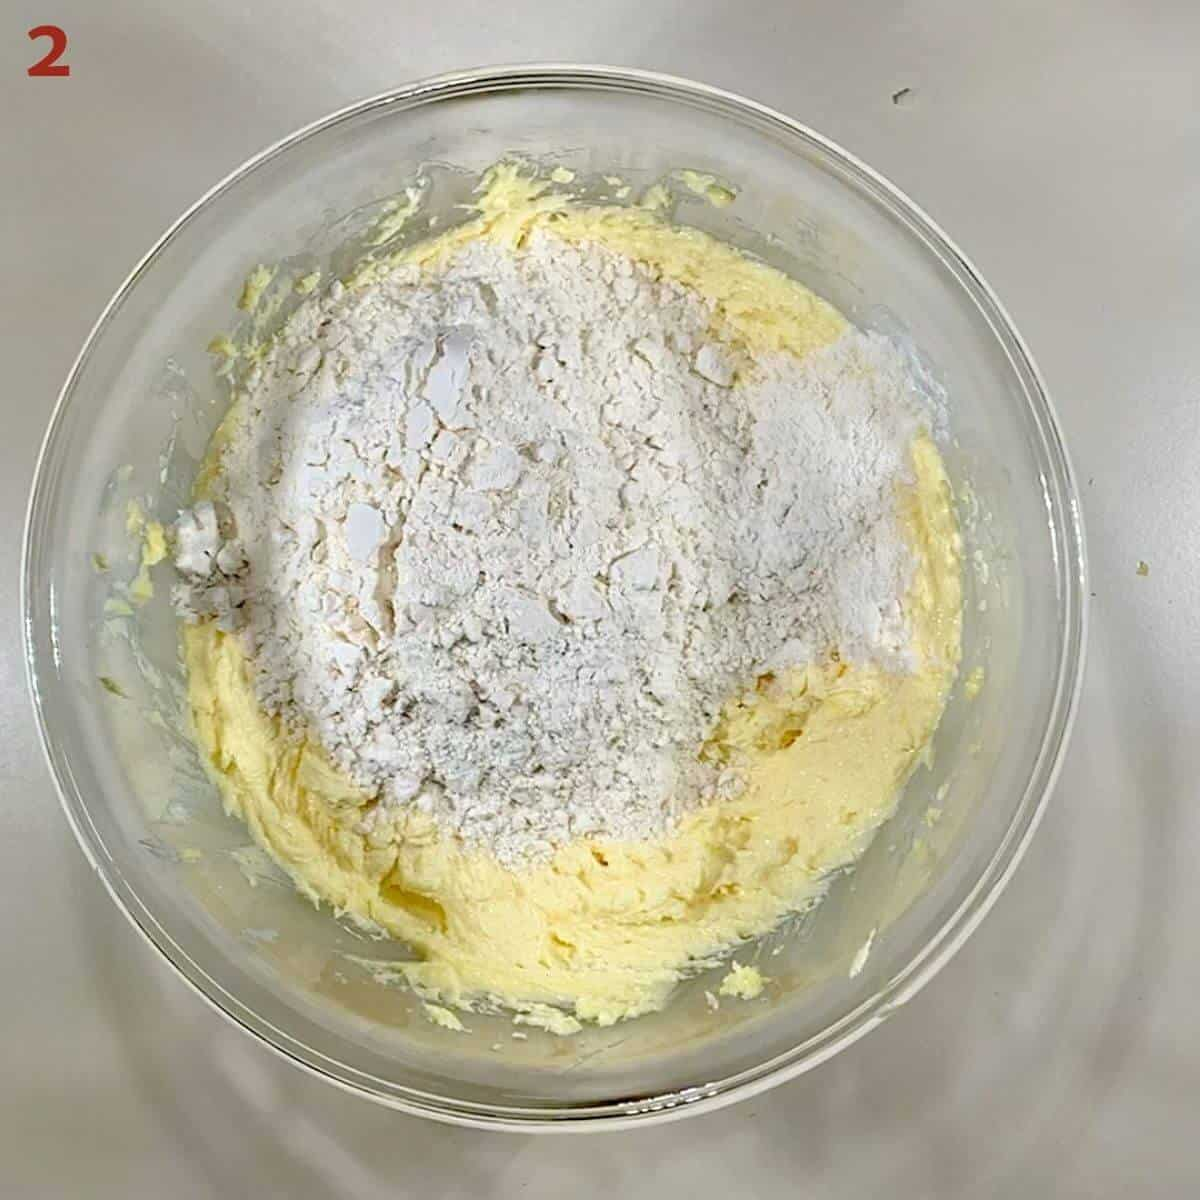 Adding flour to blended butter & sugar in a glass bowl.